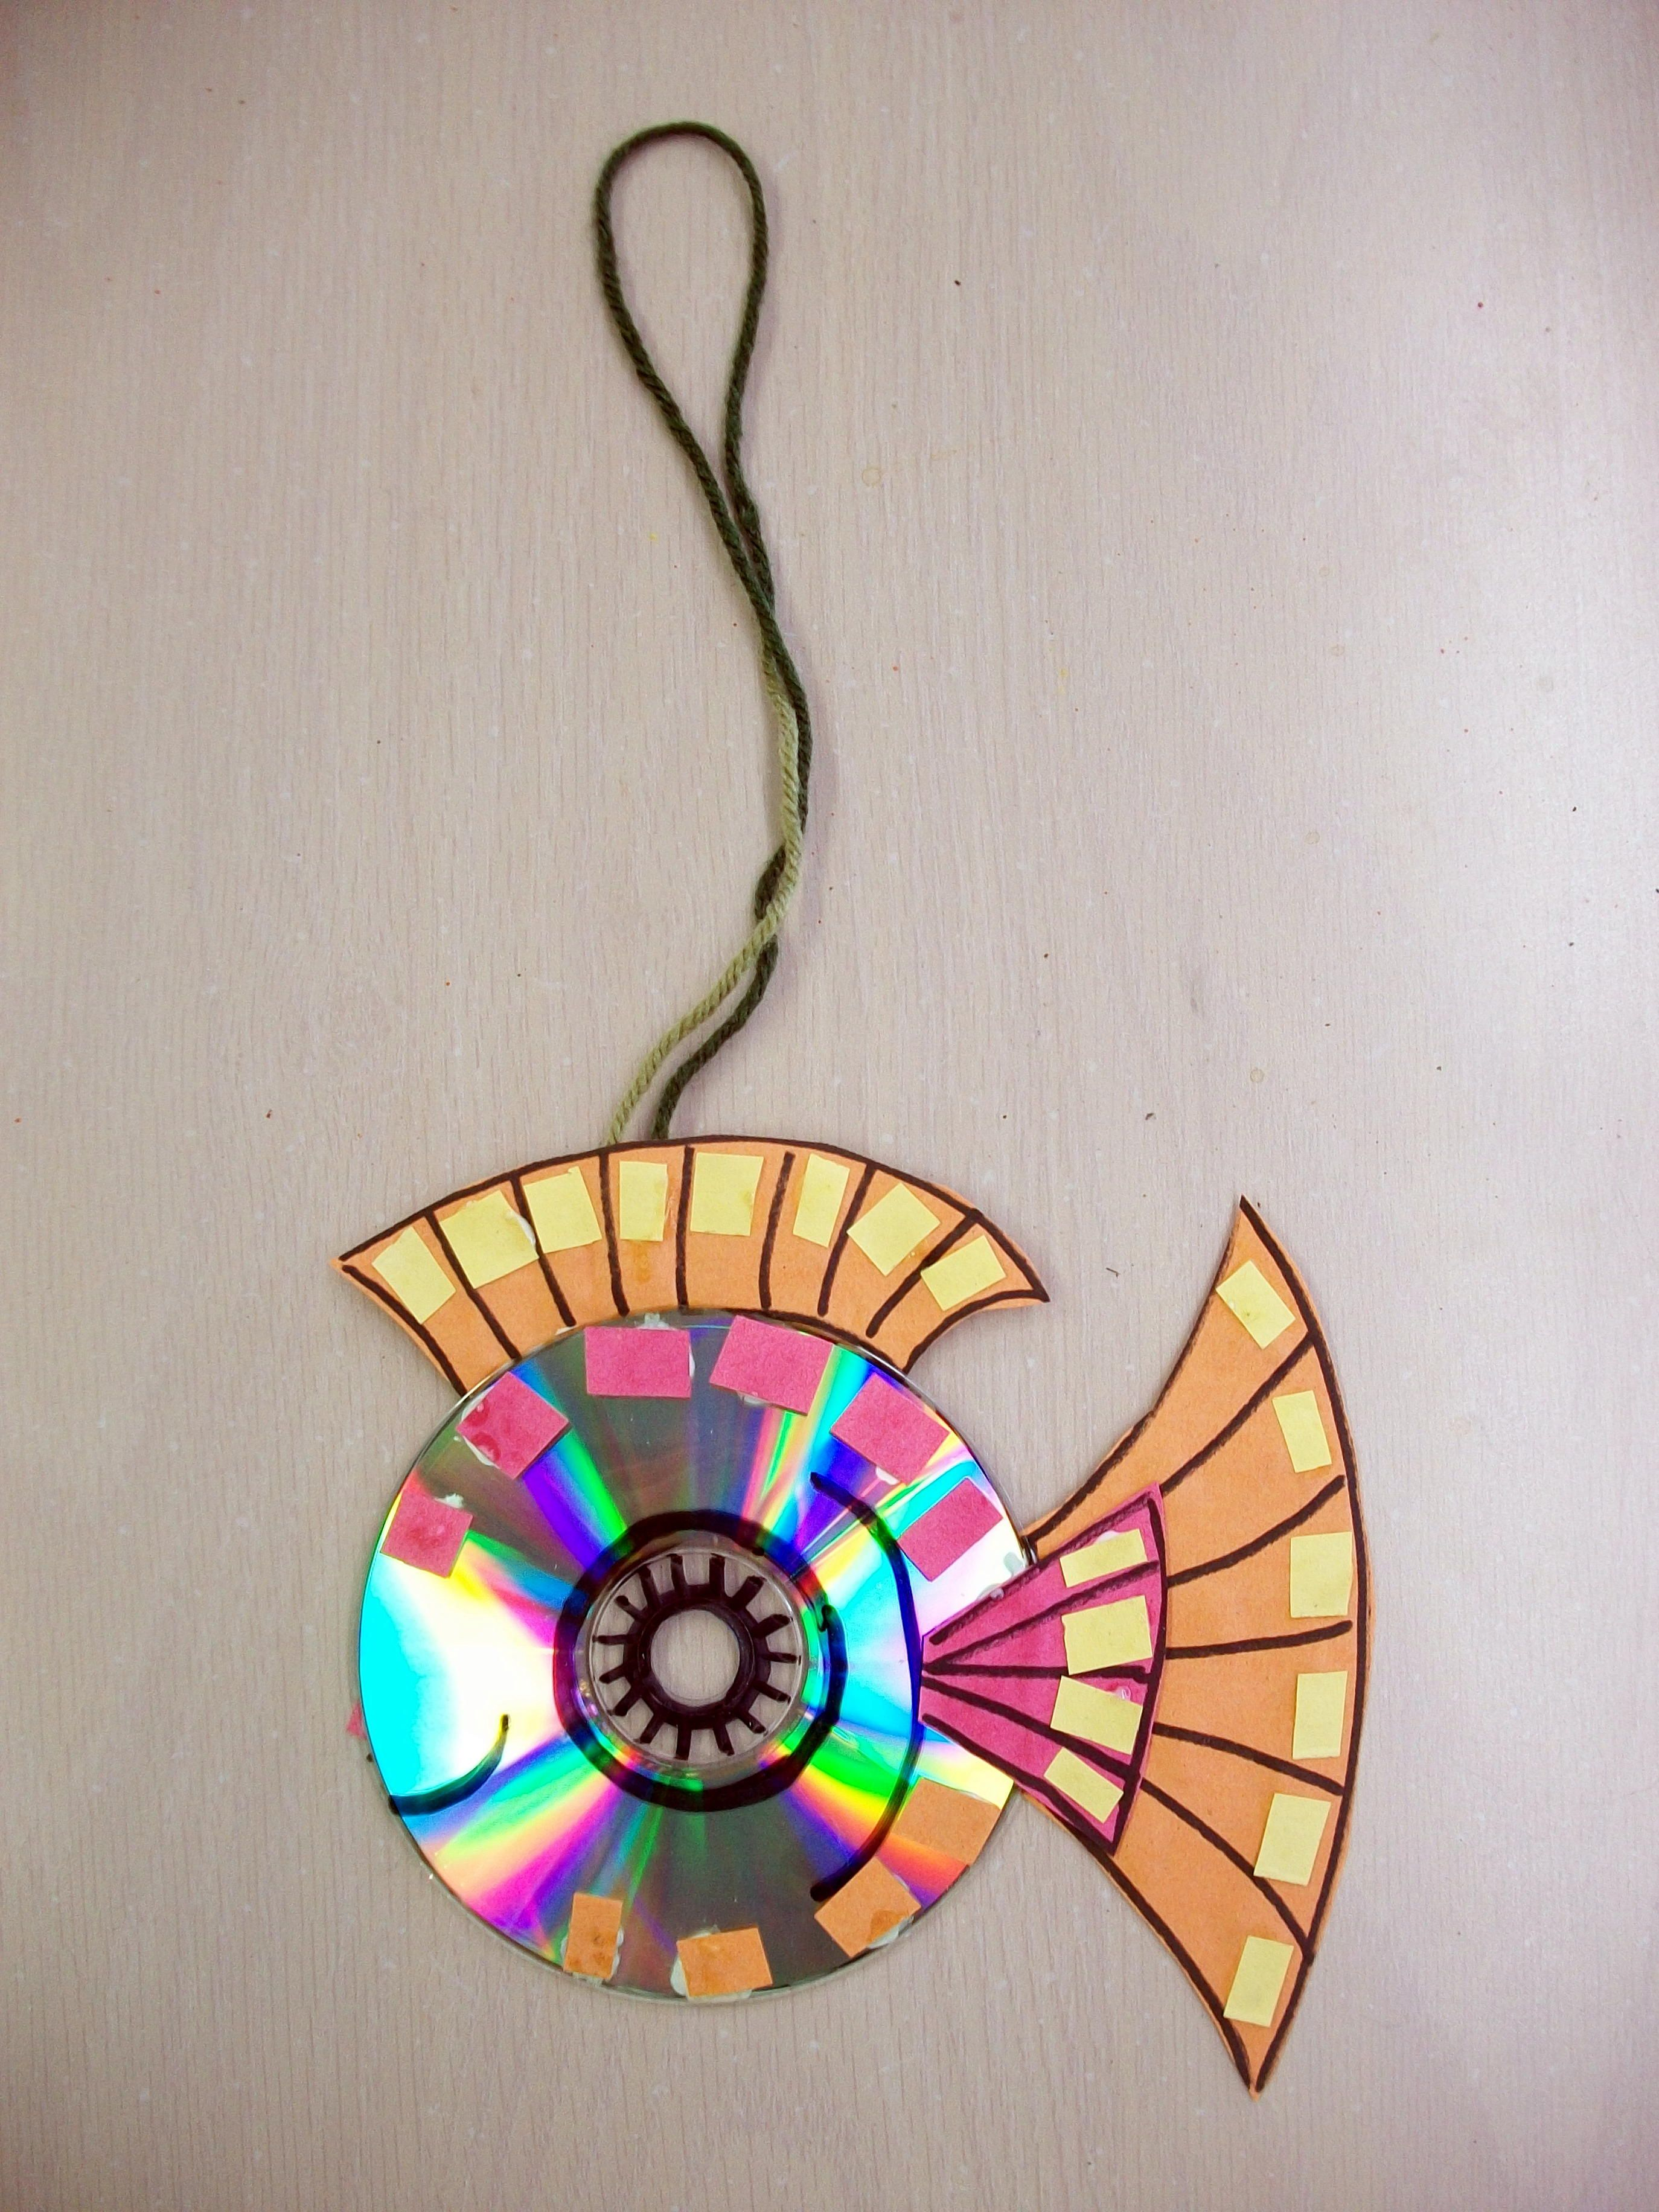 Recycled Art Old CD Construction Paper Permanent Marker Glue Yarn Scissors Great Project For 5 7 Year Olds